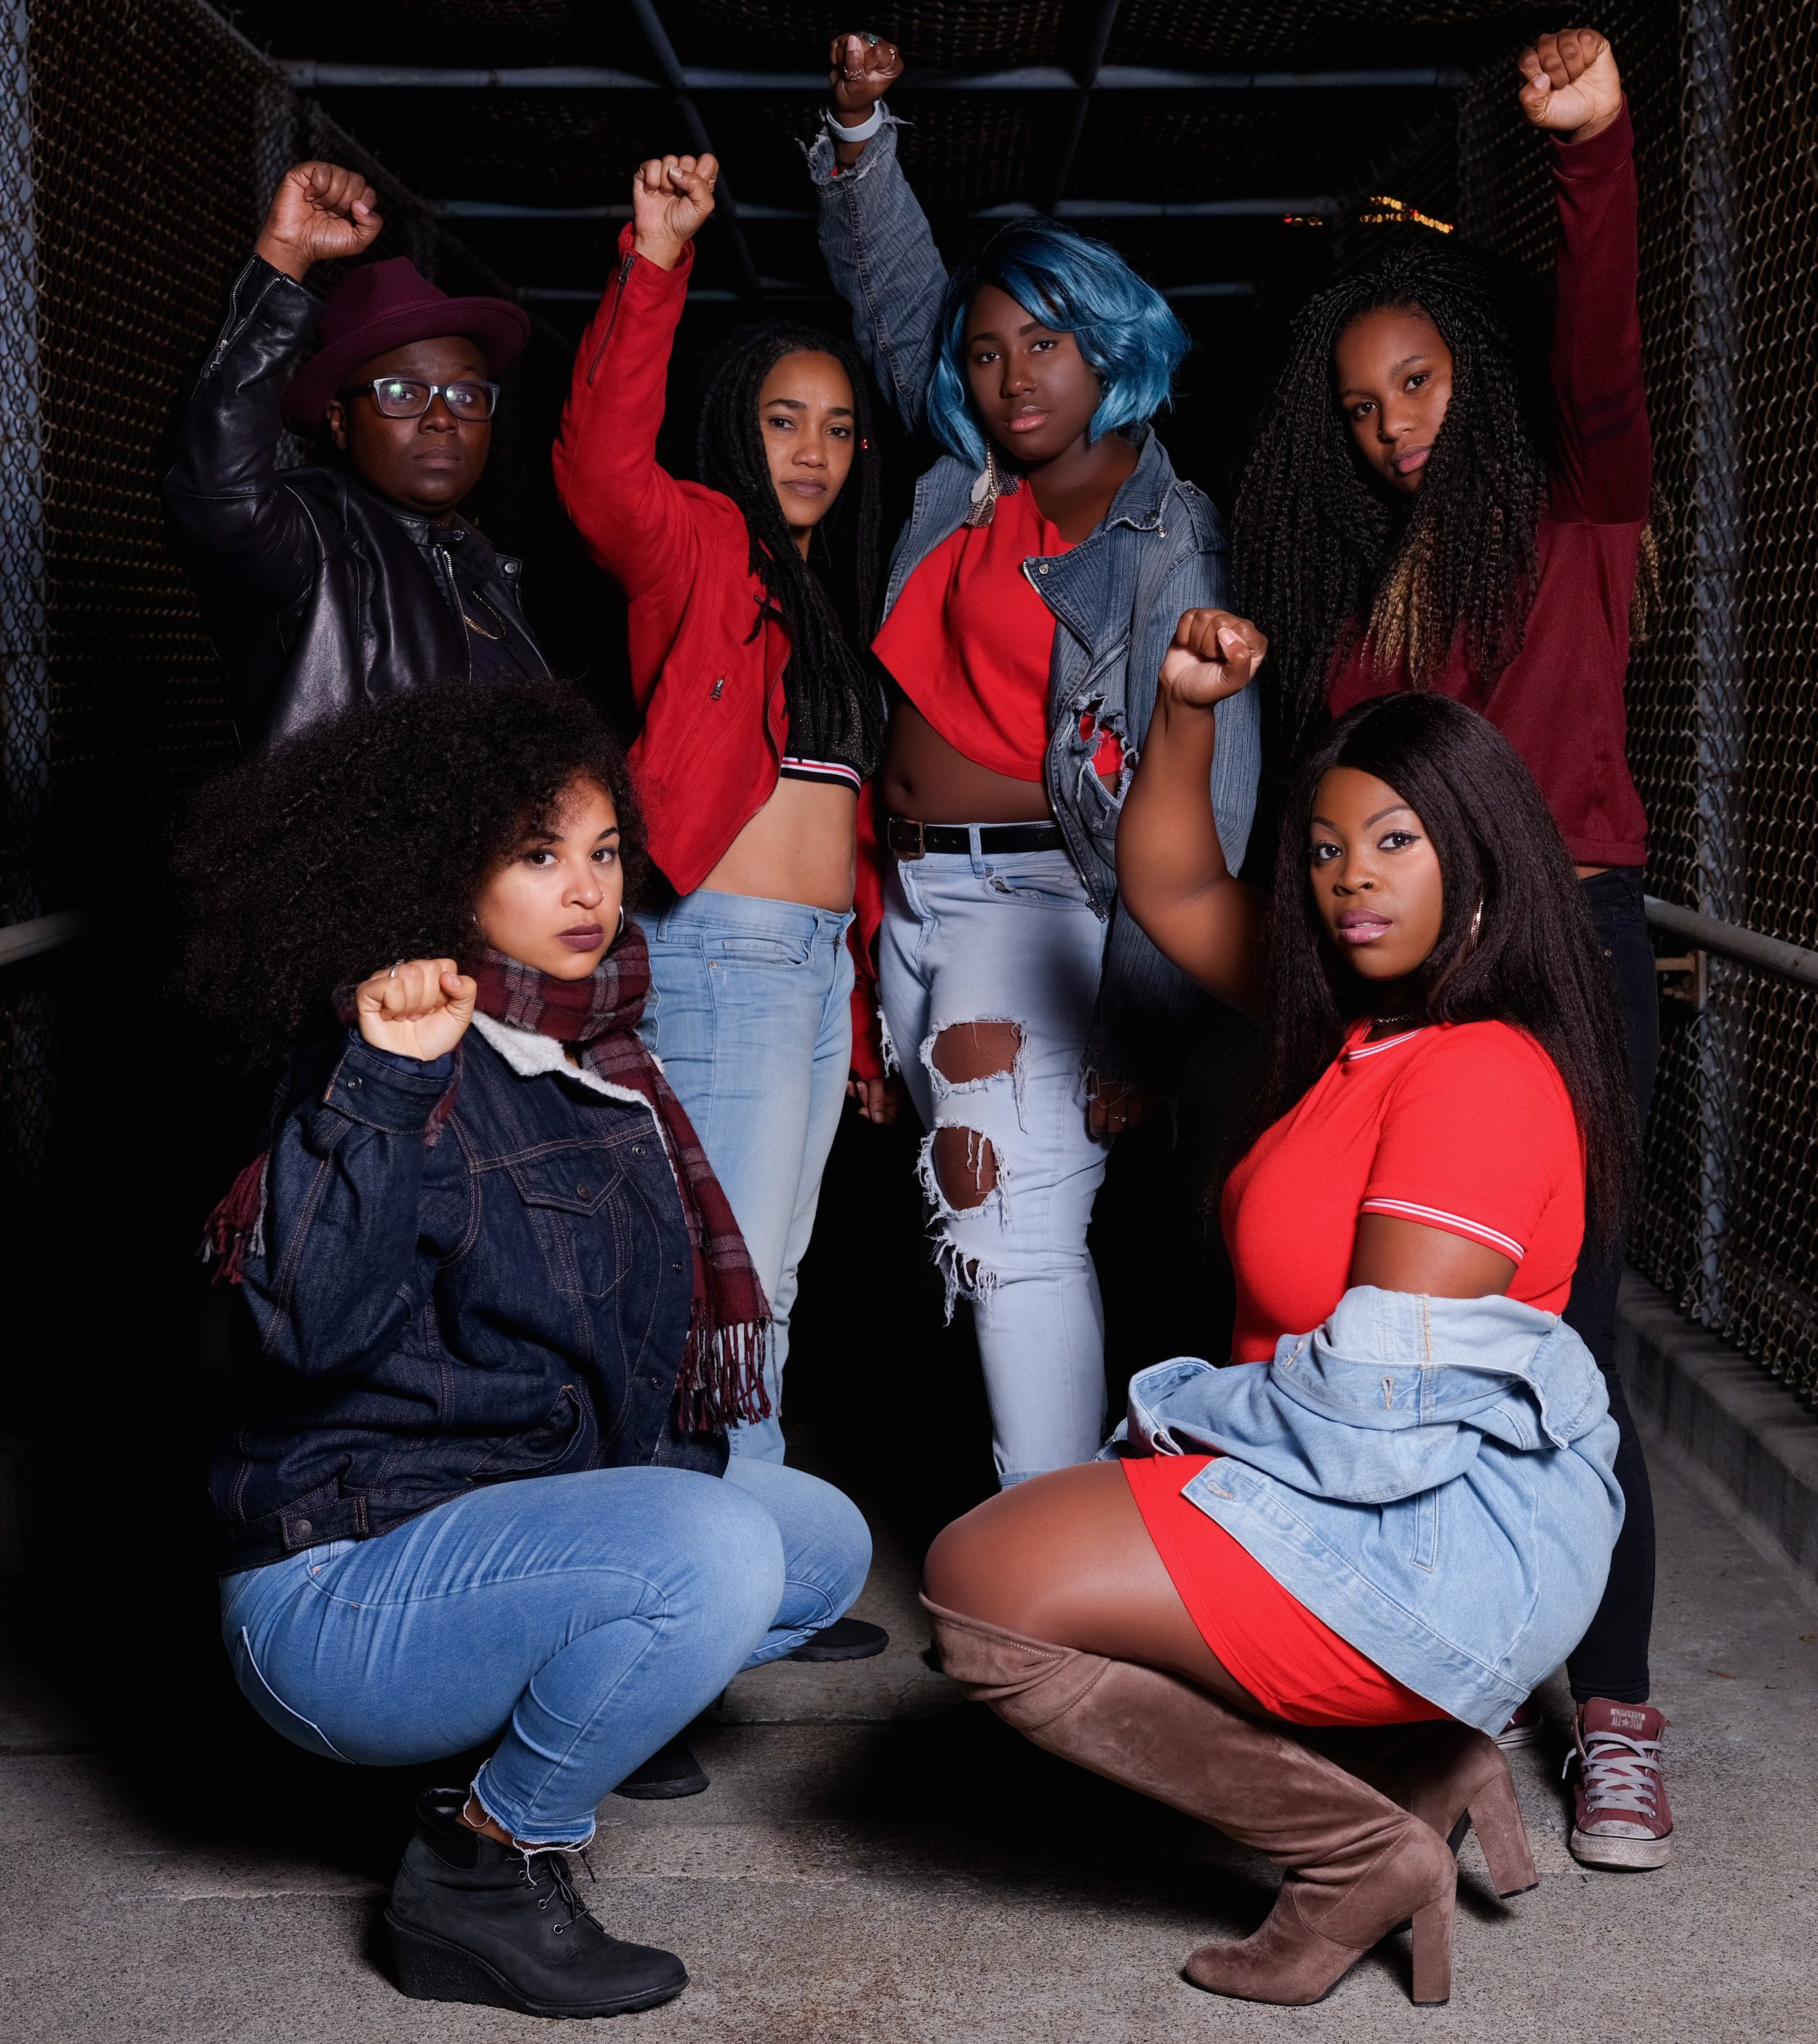 MEET THE BAND - The Onyx is an all black female six member music ensemble. This collective came together to solidify unity among women of color and to provide an artistic outlet for the female voice to be heard. Hailing from and recalling styles of Oakland, New York, Chicago, North Carolina, Cuba and Puerto Rico. This eclectic group brings r&b, rock, electronic and latin music to an electrifying peak that will have you on your feet!